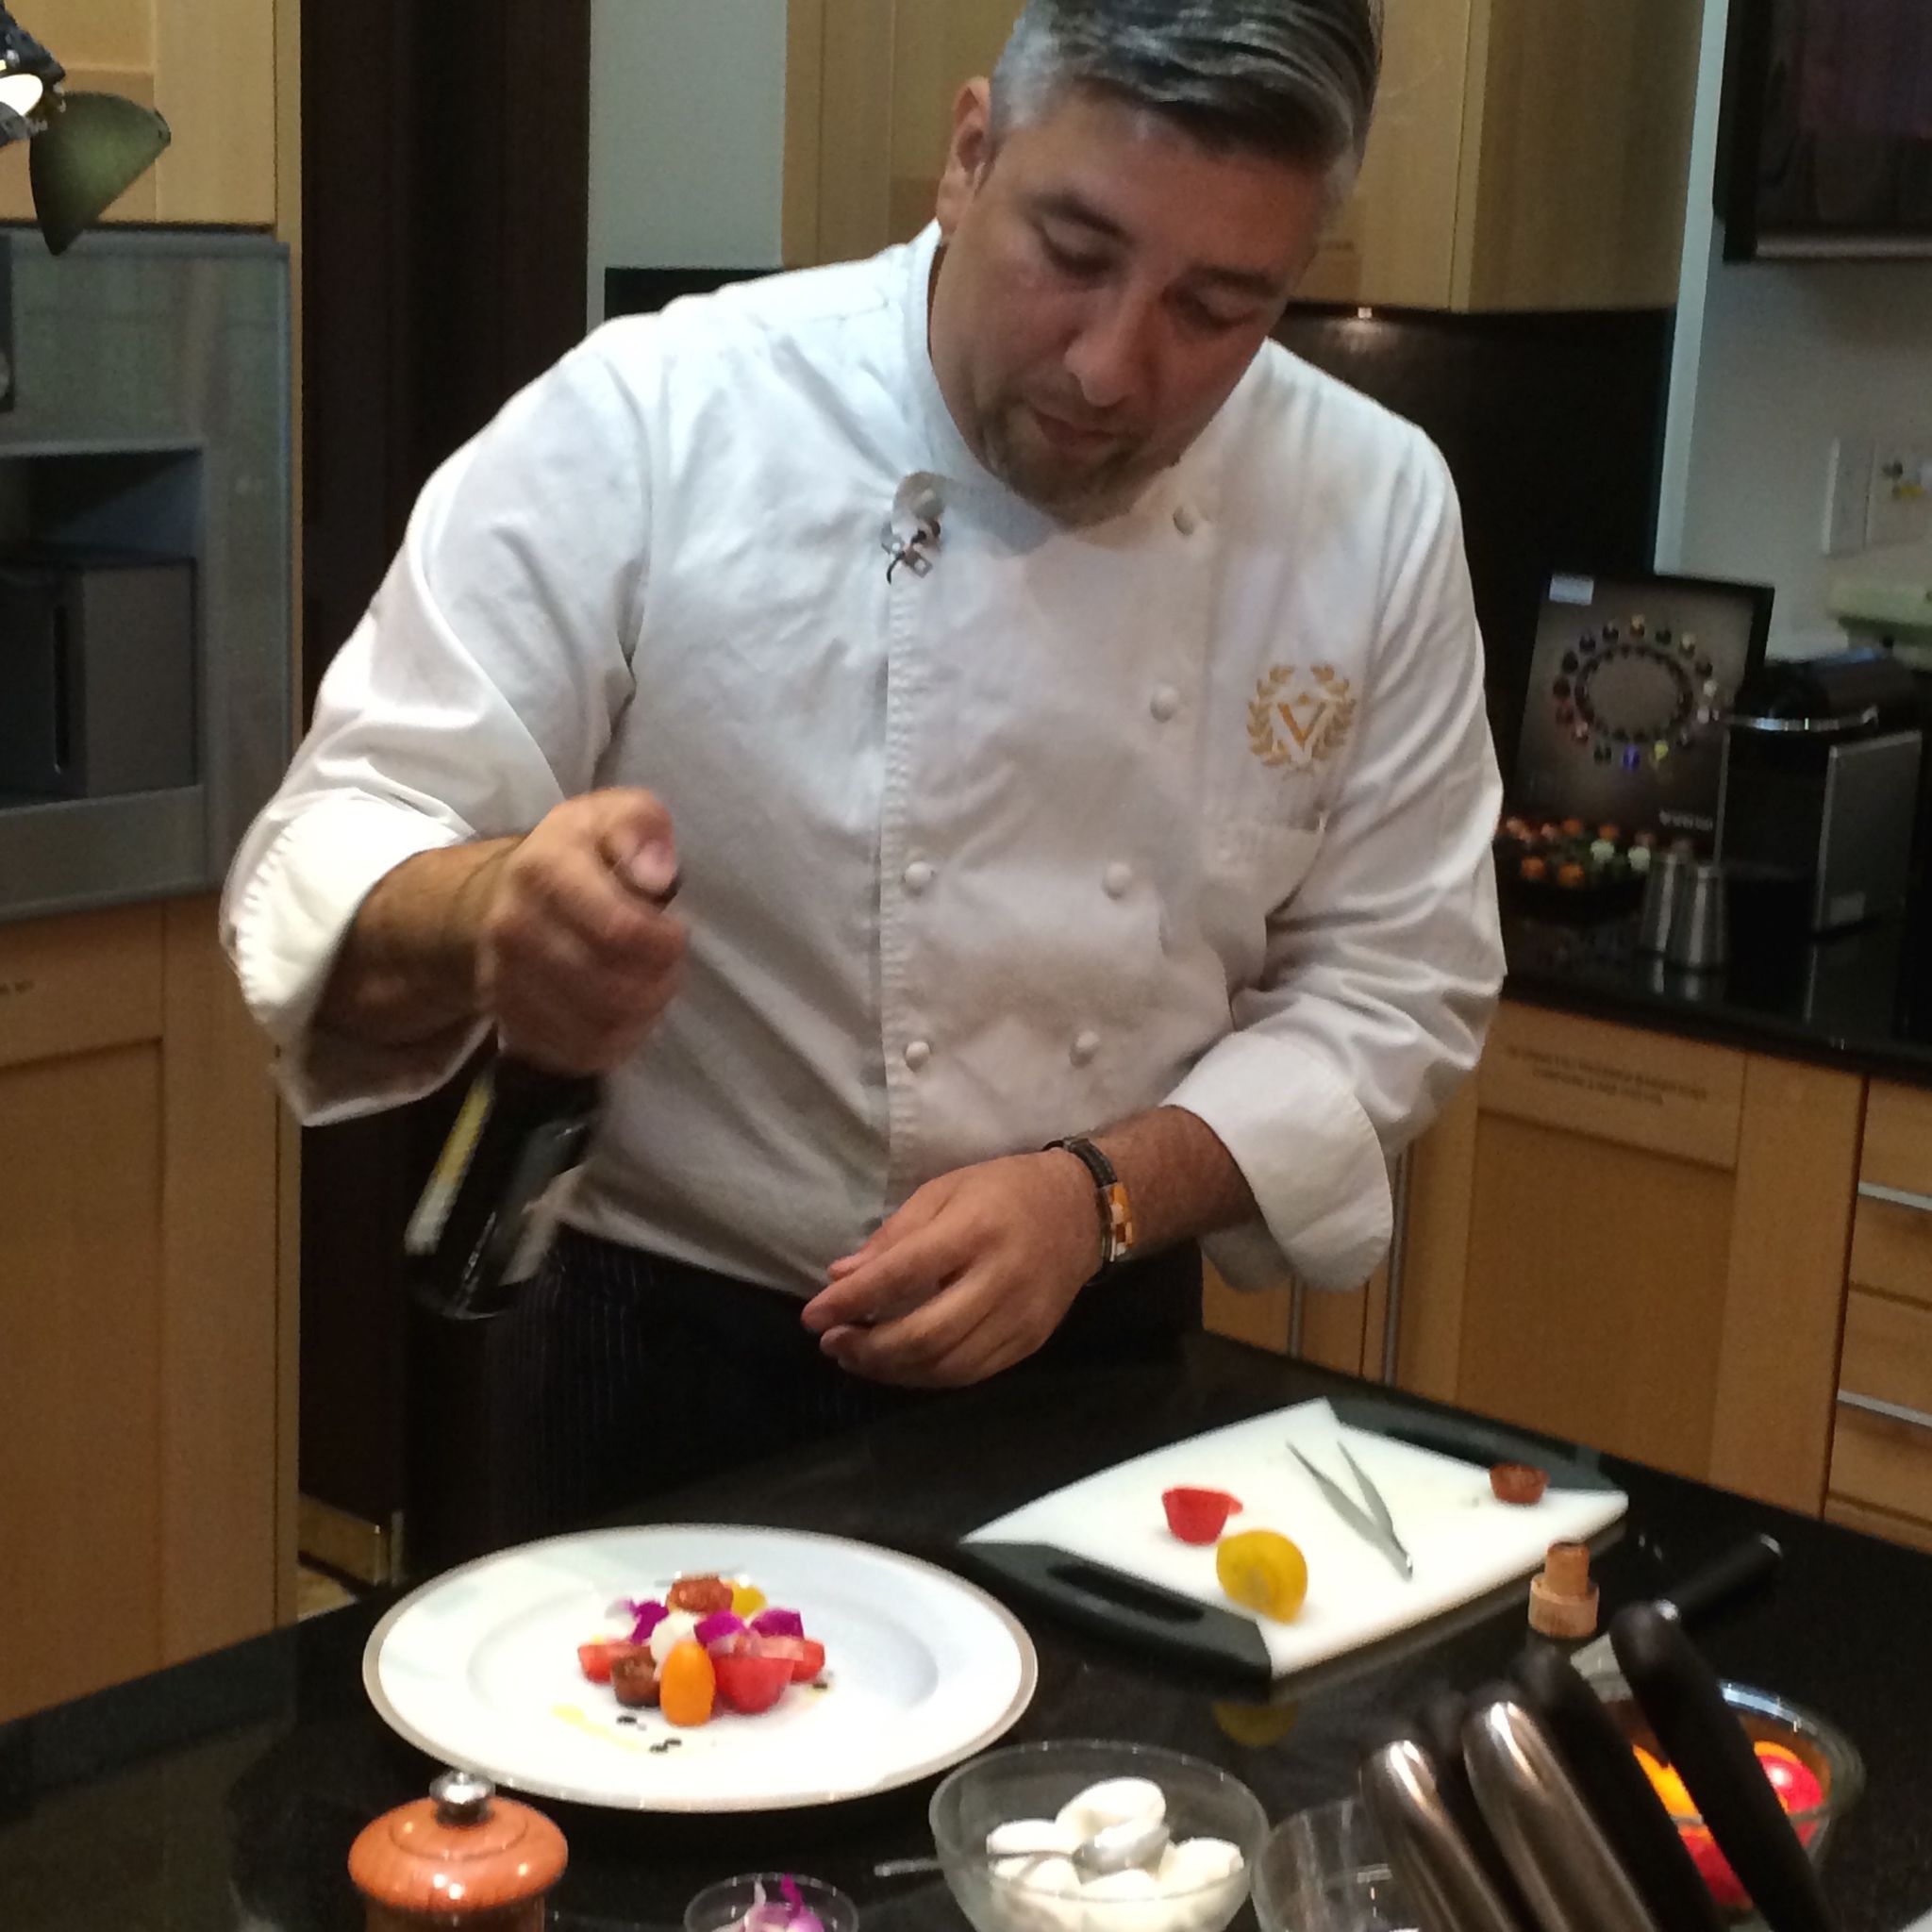 Chef Jason raises the bar once again while preparing a specially made gourmet meal for Villazzo guests. #luxury #private #finedining